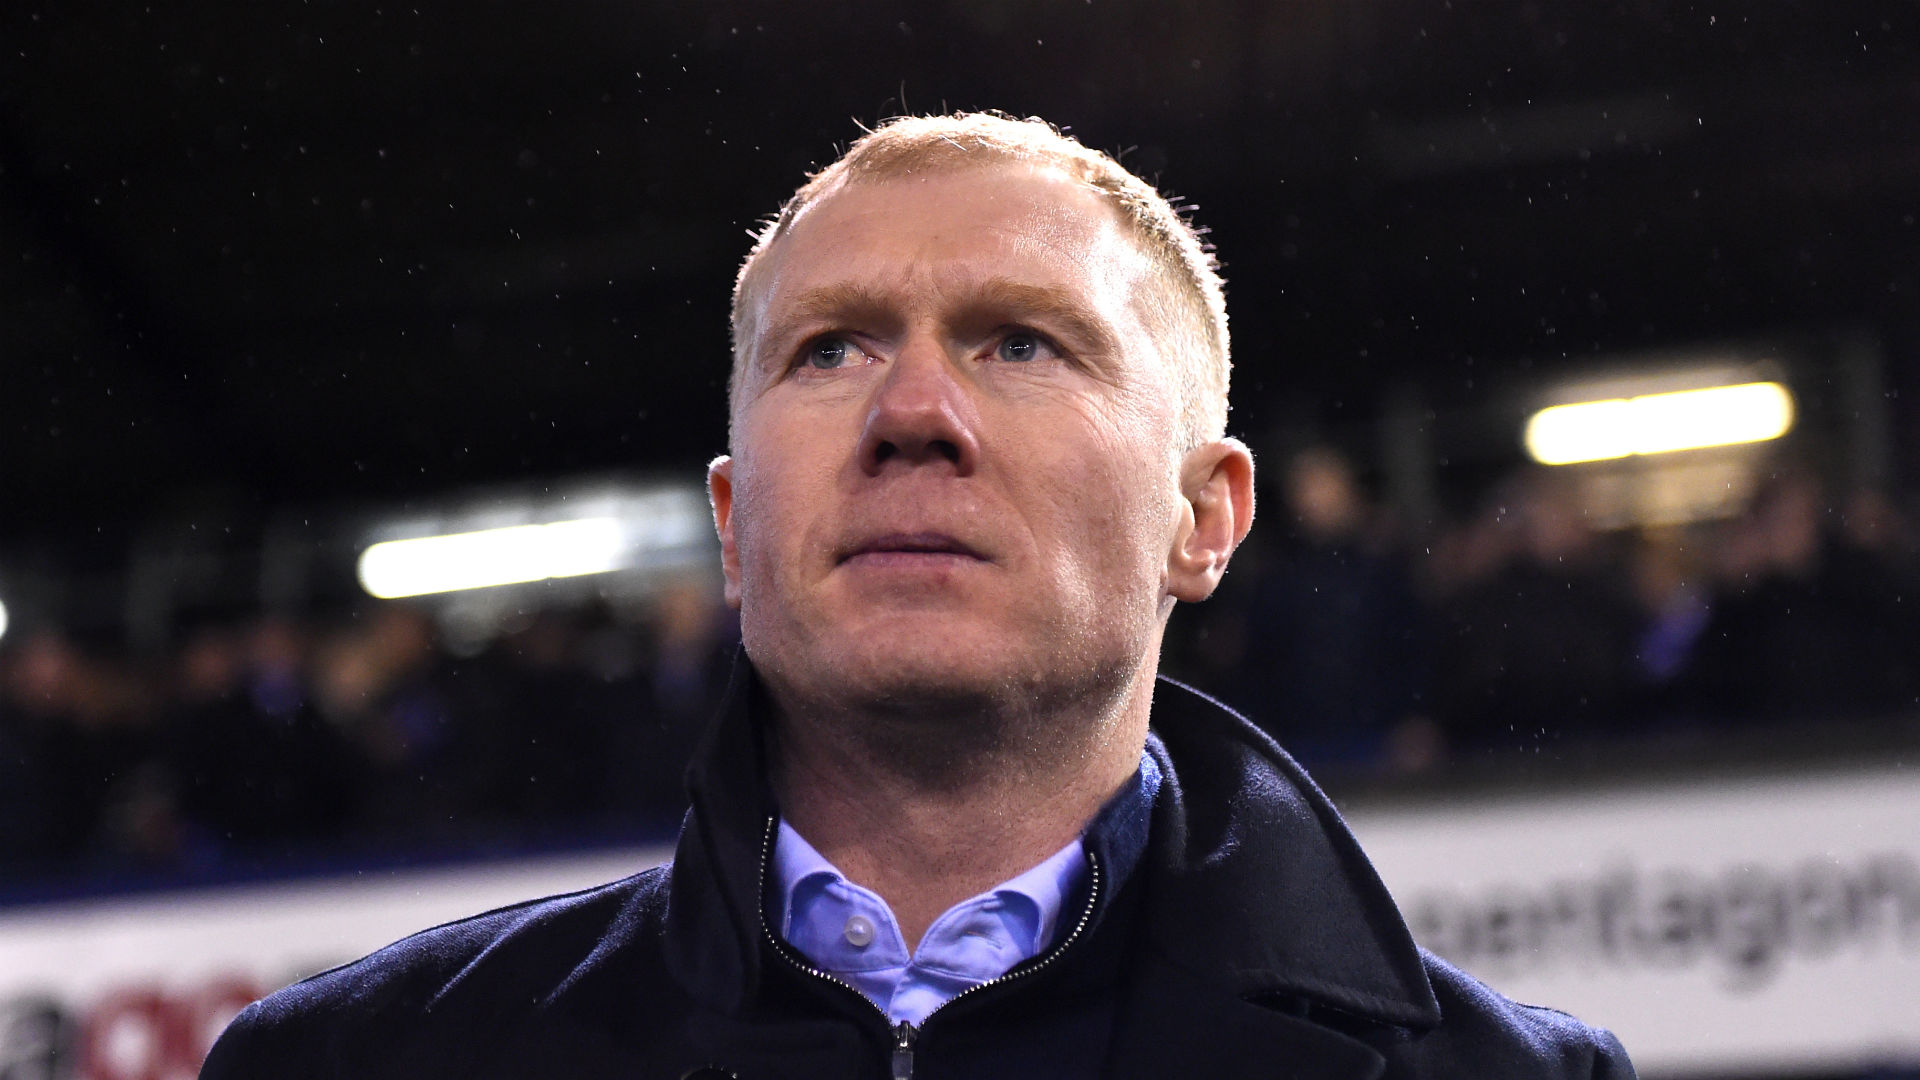 Paul Scholes fined by FA for breaching betting rules